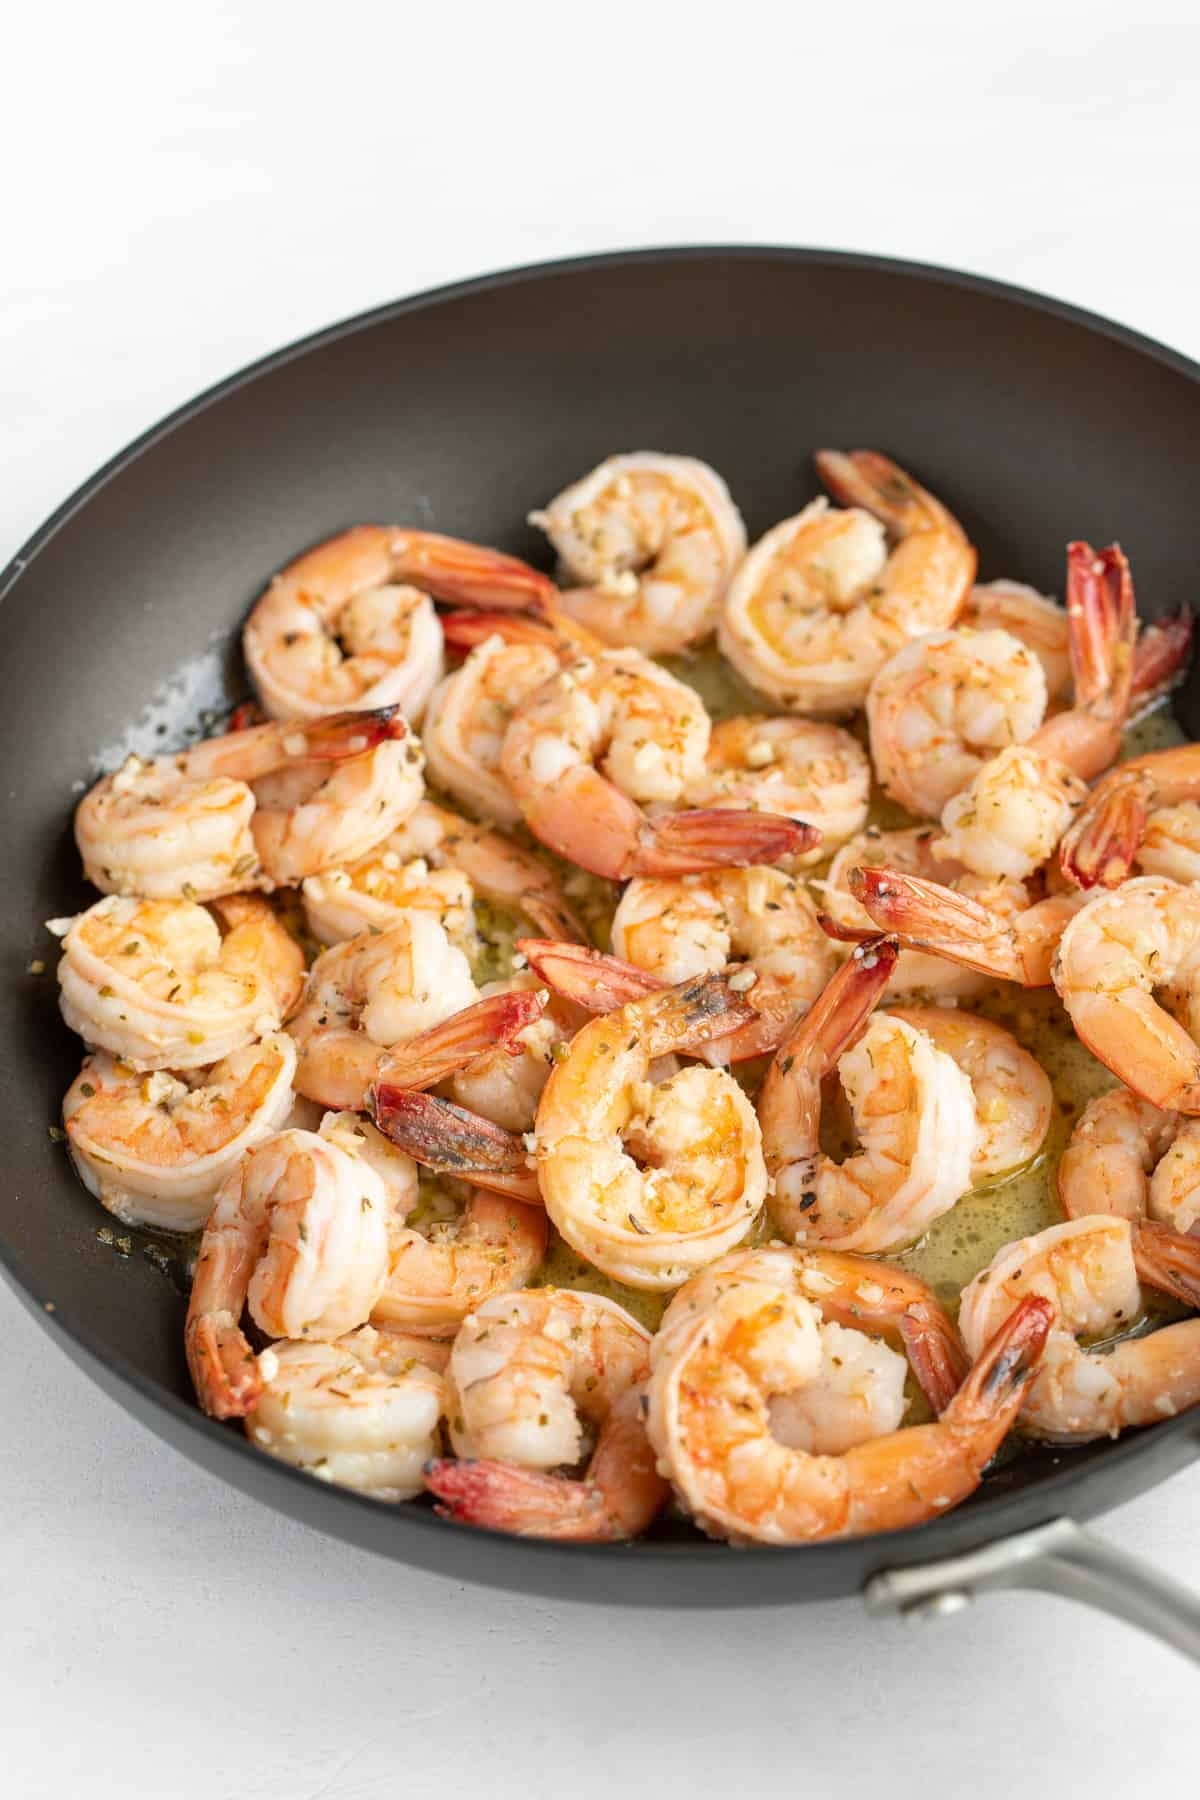 Cooked shrimp in melted butter and olive oil in a skillet on a white surface.